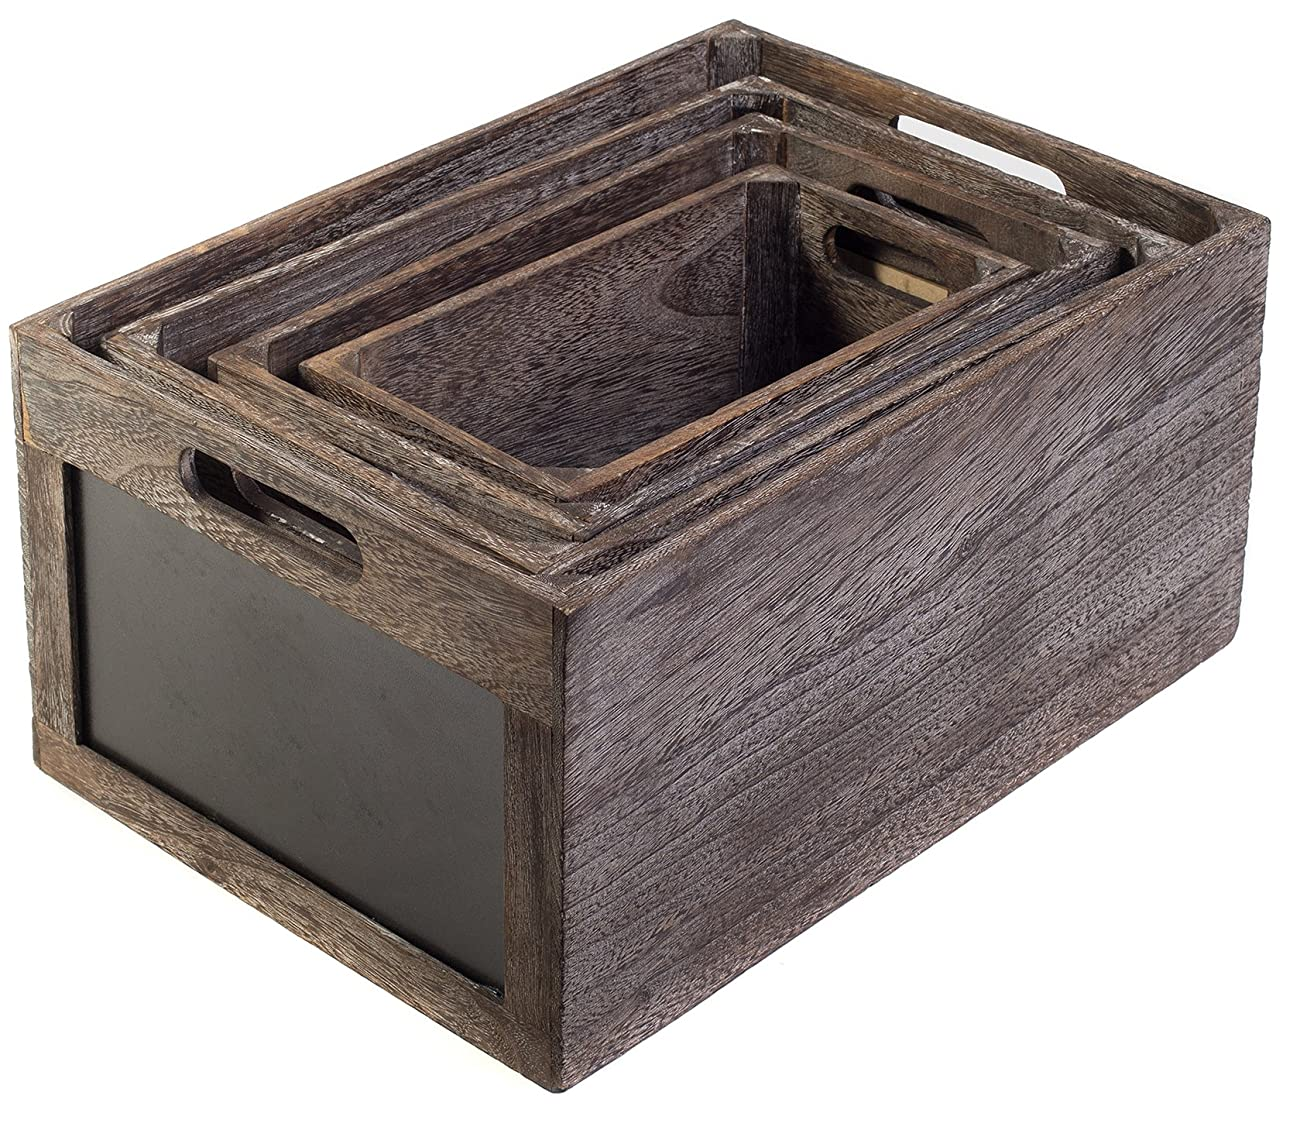 Vintage Style Produce Chalkboard Front Crates Wooden Box - Set of 4 1